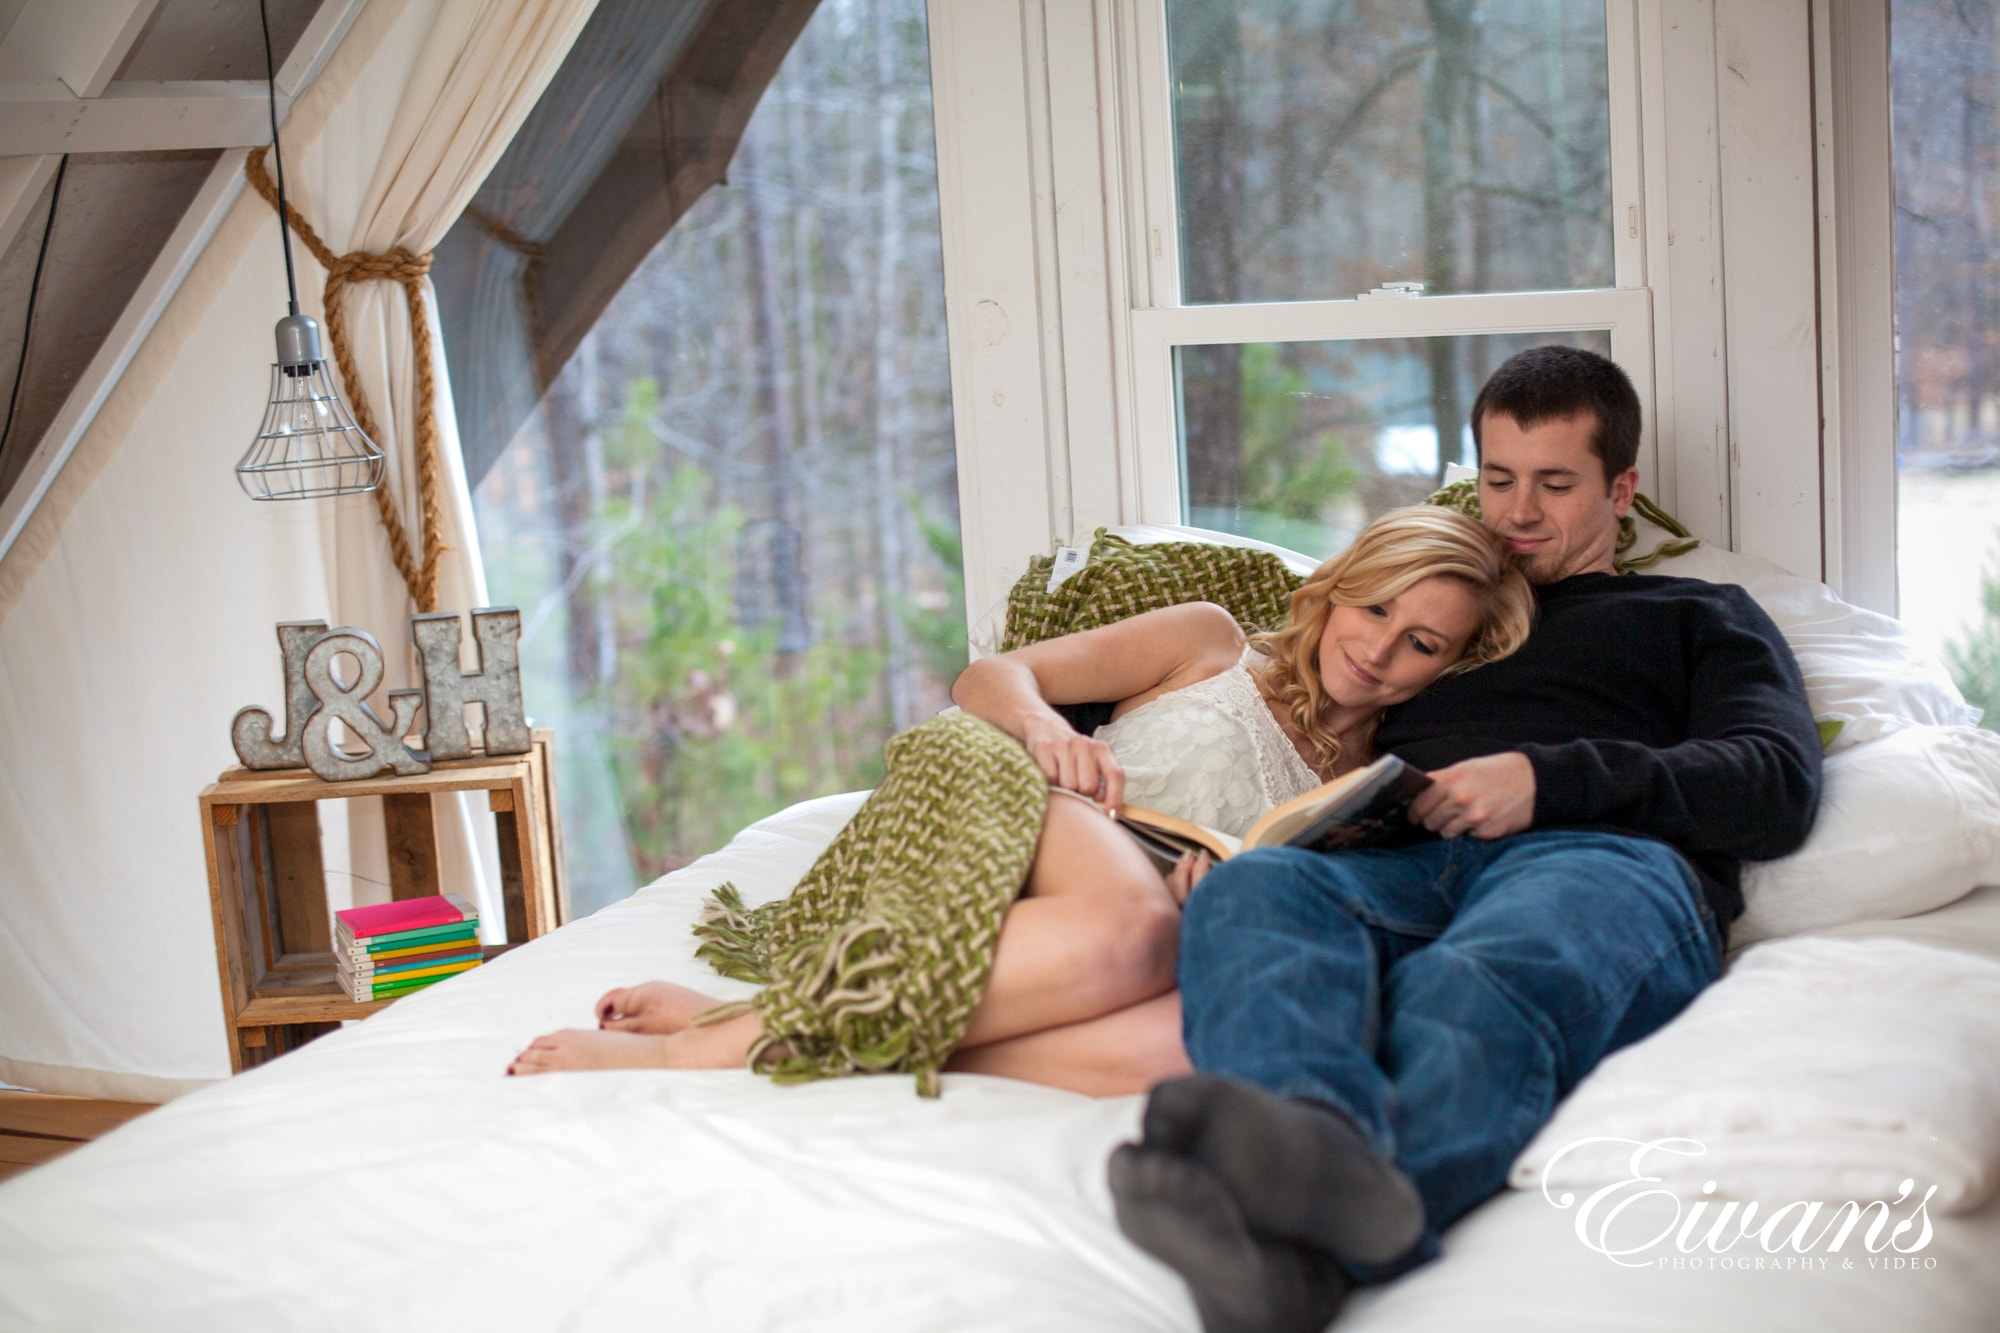 Image of an engaged man and woman laying on their bed at home